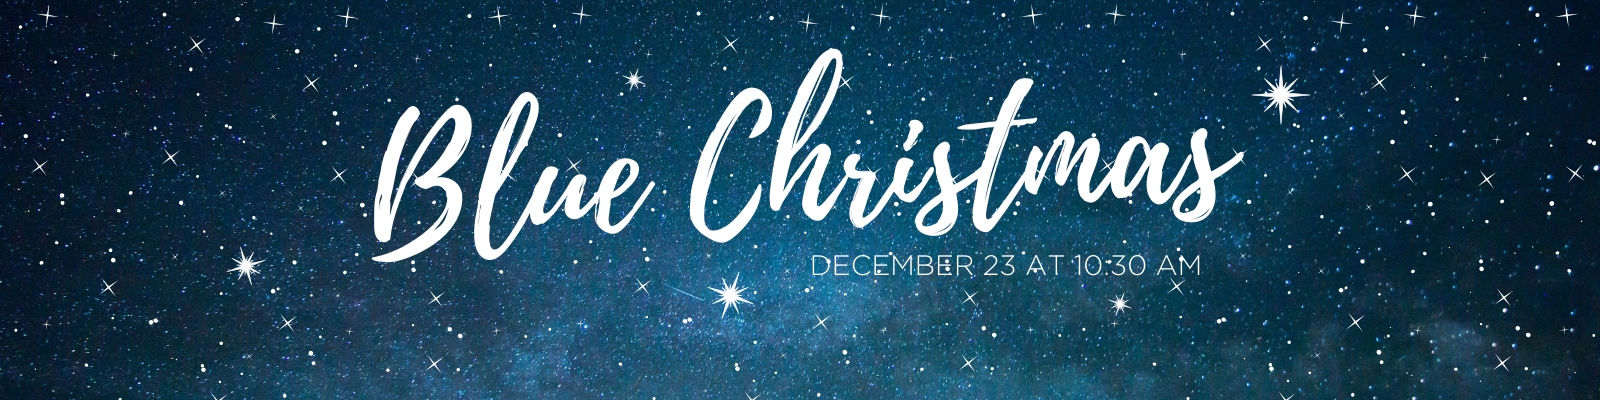 For those who find Christmas time a little difficult, plan to join us for our Blue Christmas service at 10:30 am on December 23 at St John Lutheran in Ely, IA.